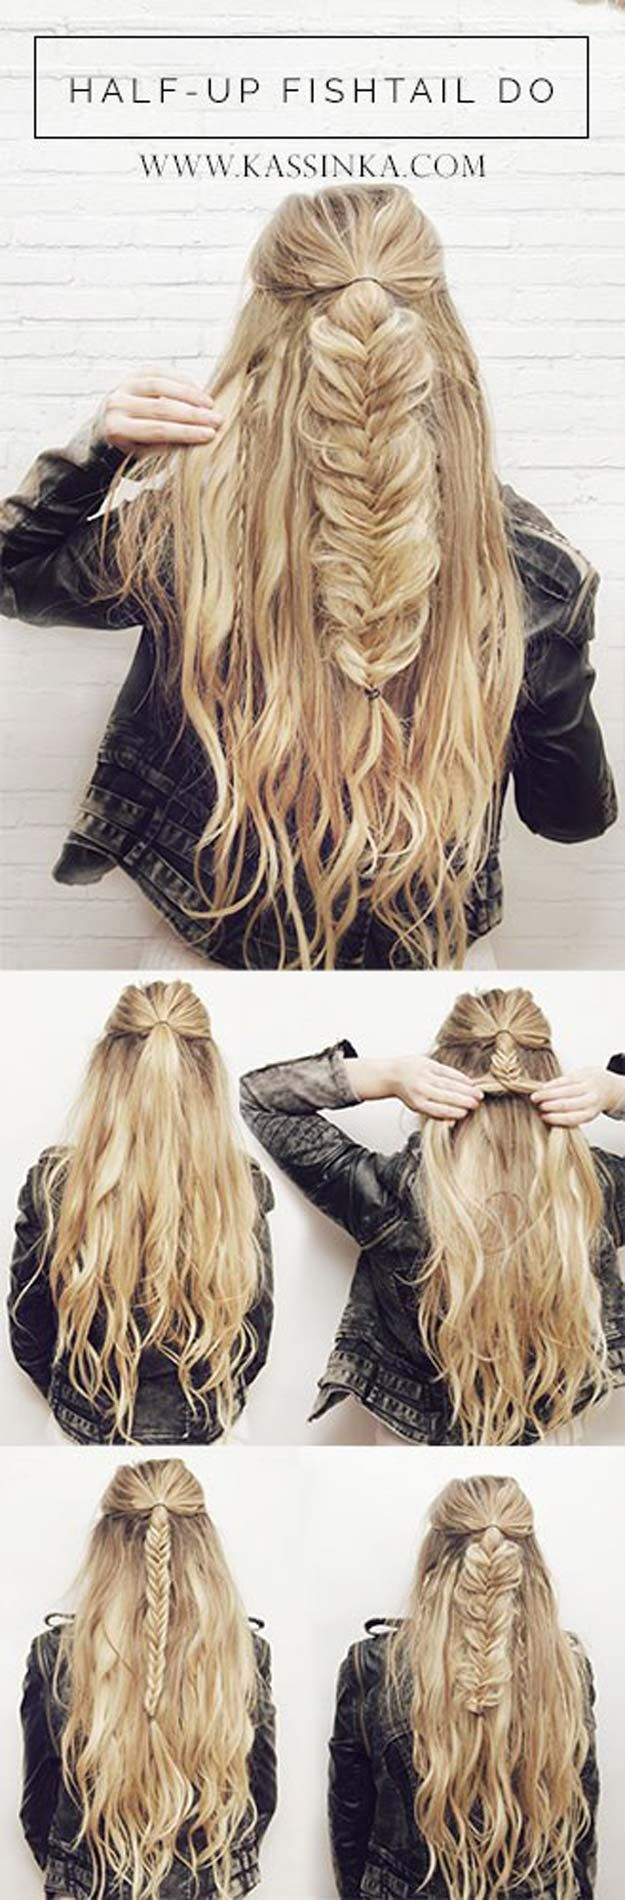 34 best hair images on pinterest | hairstyles, braids and